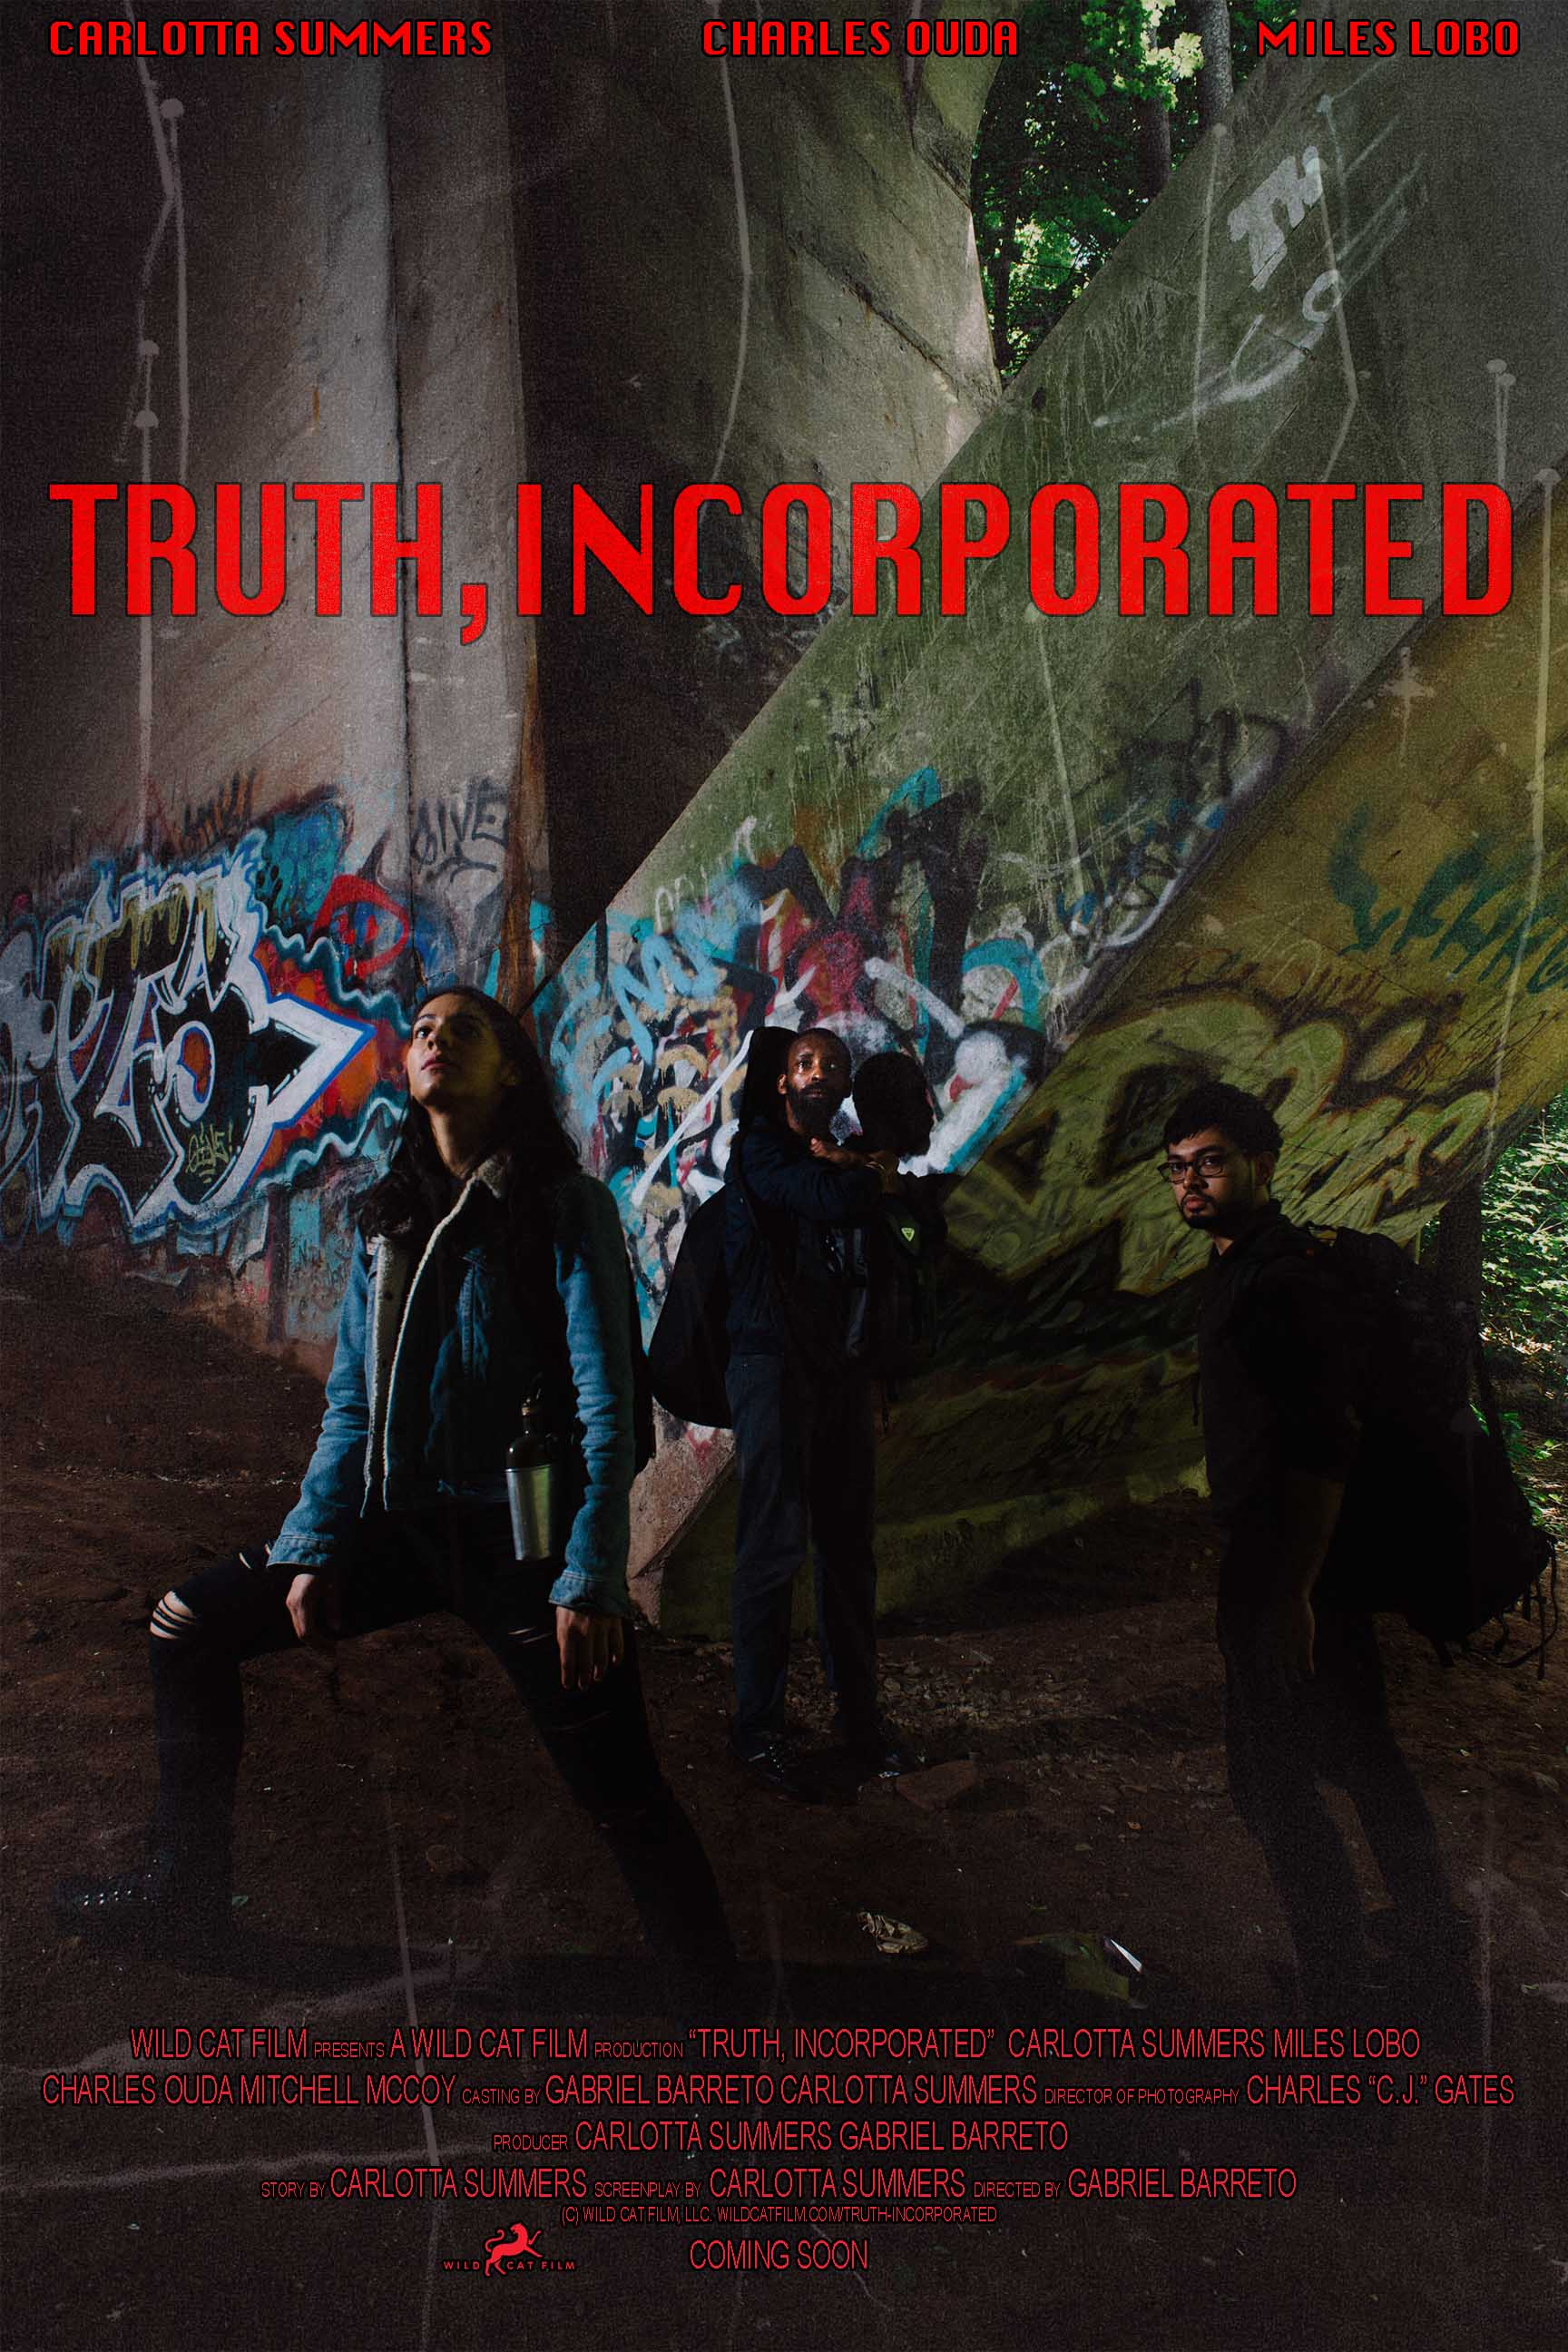 Truth Incorporated - A Cautionary Tale: In a post-totalitarian takeover, a group of rebels must report the news while confronting dark secrets of their own.